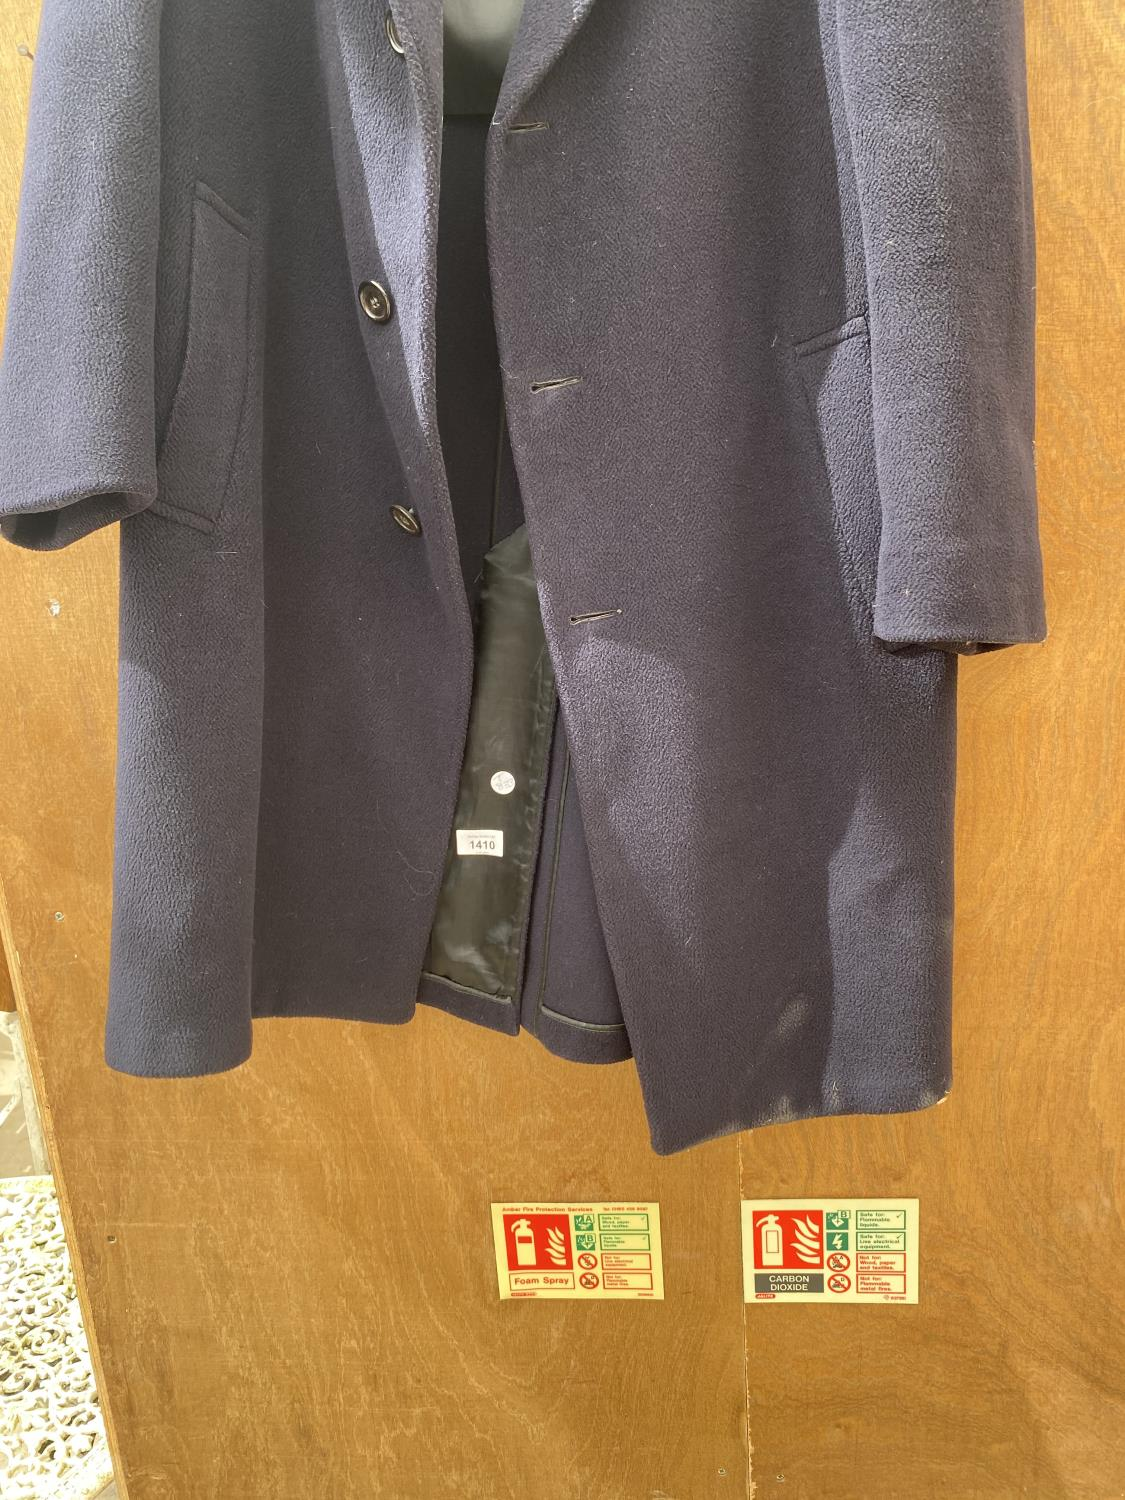 A GENTS CROMBIE JACKET - Image 5 of 5